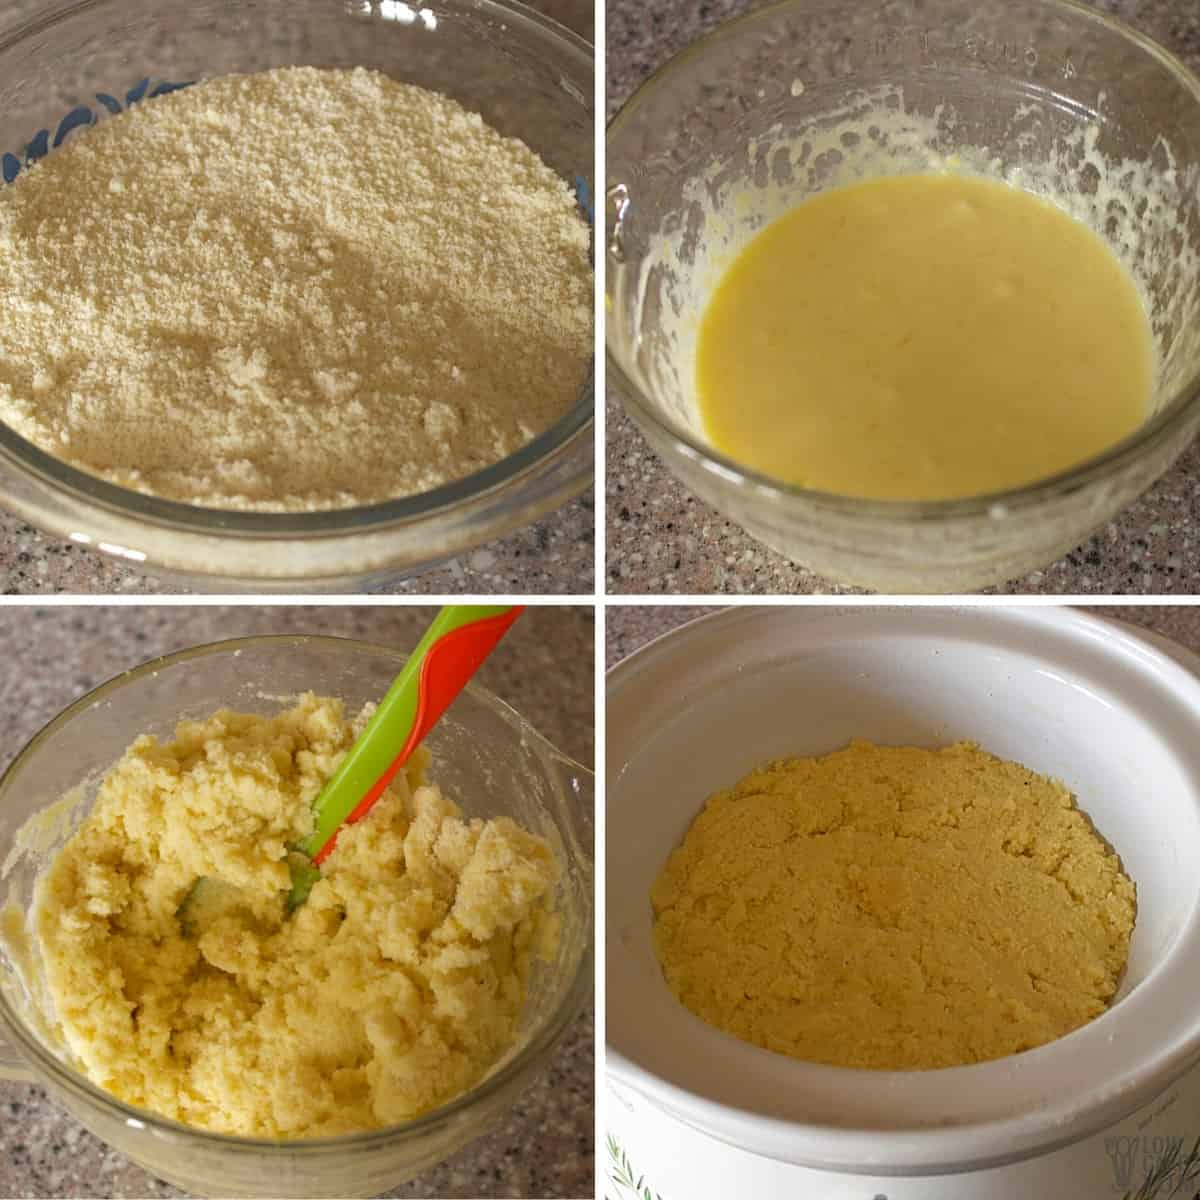 making the cake batter and pressing into crock pot